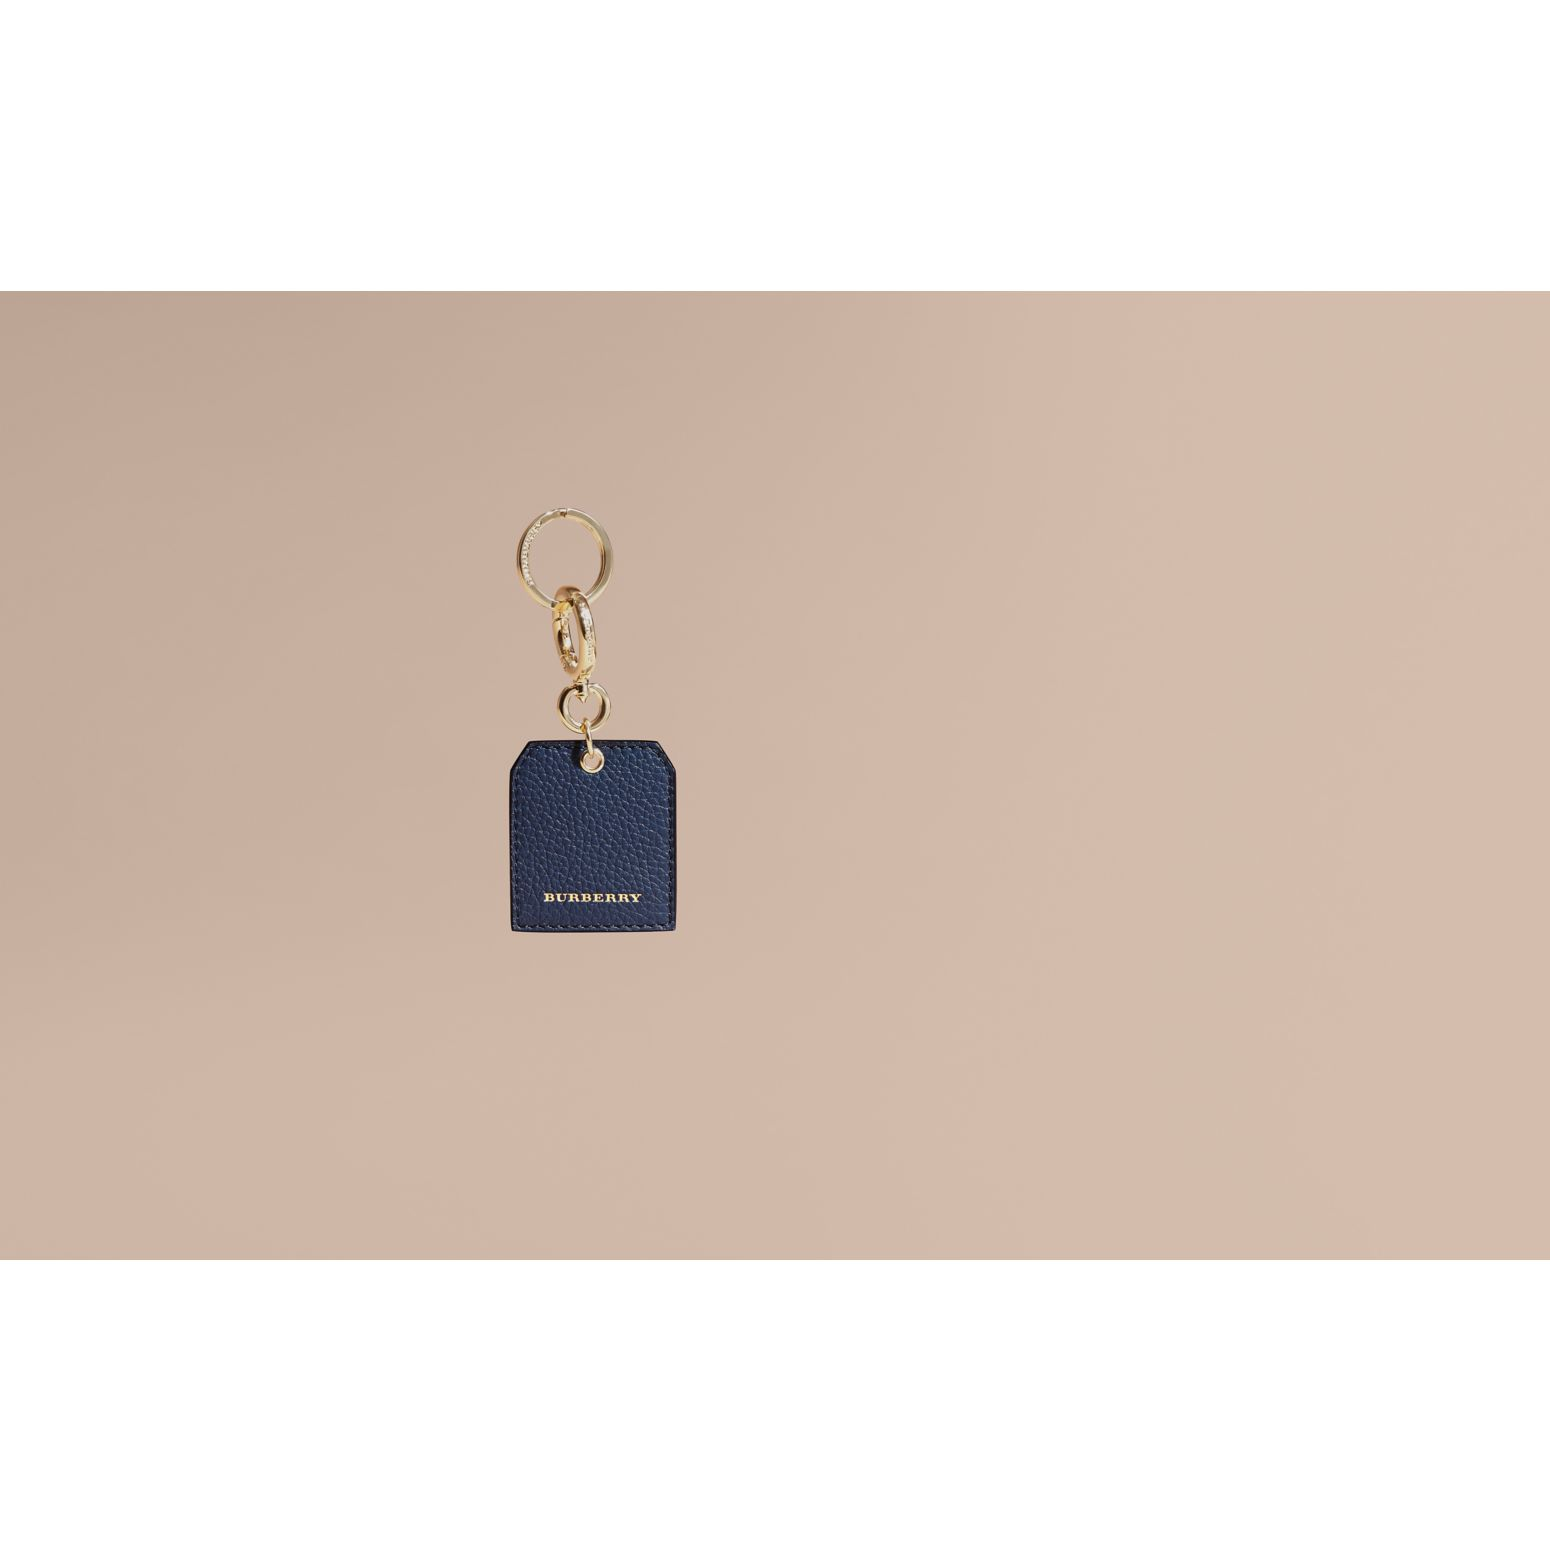 Grainy Leather Key Charm in Bright Navy - Women | Burberry United Kingdom - gallery image 2